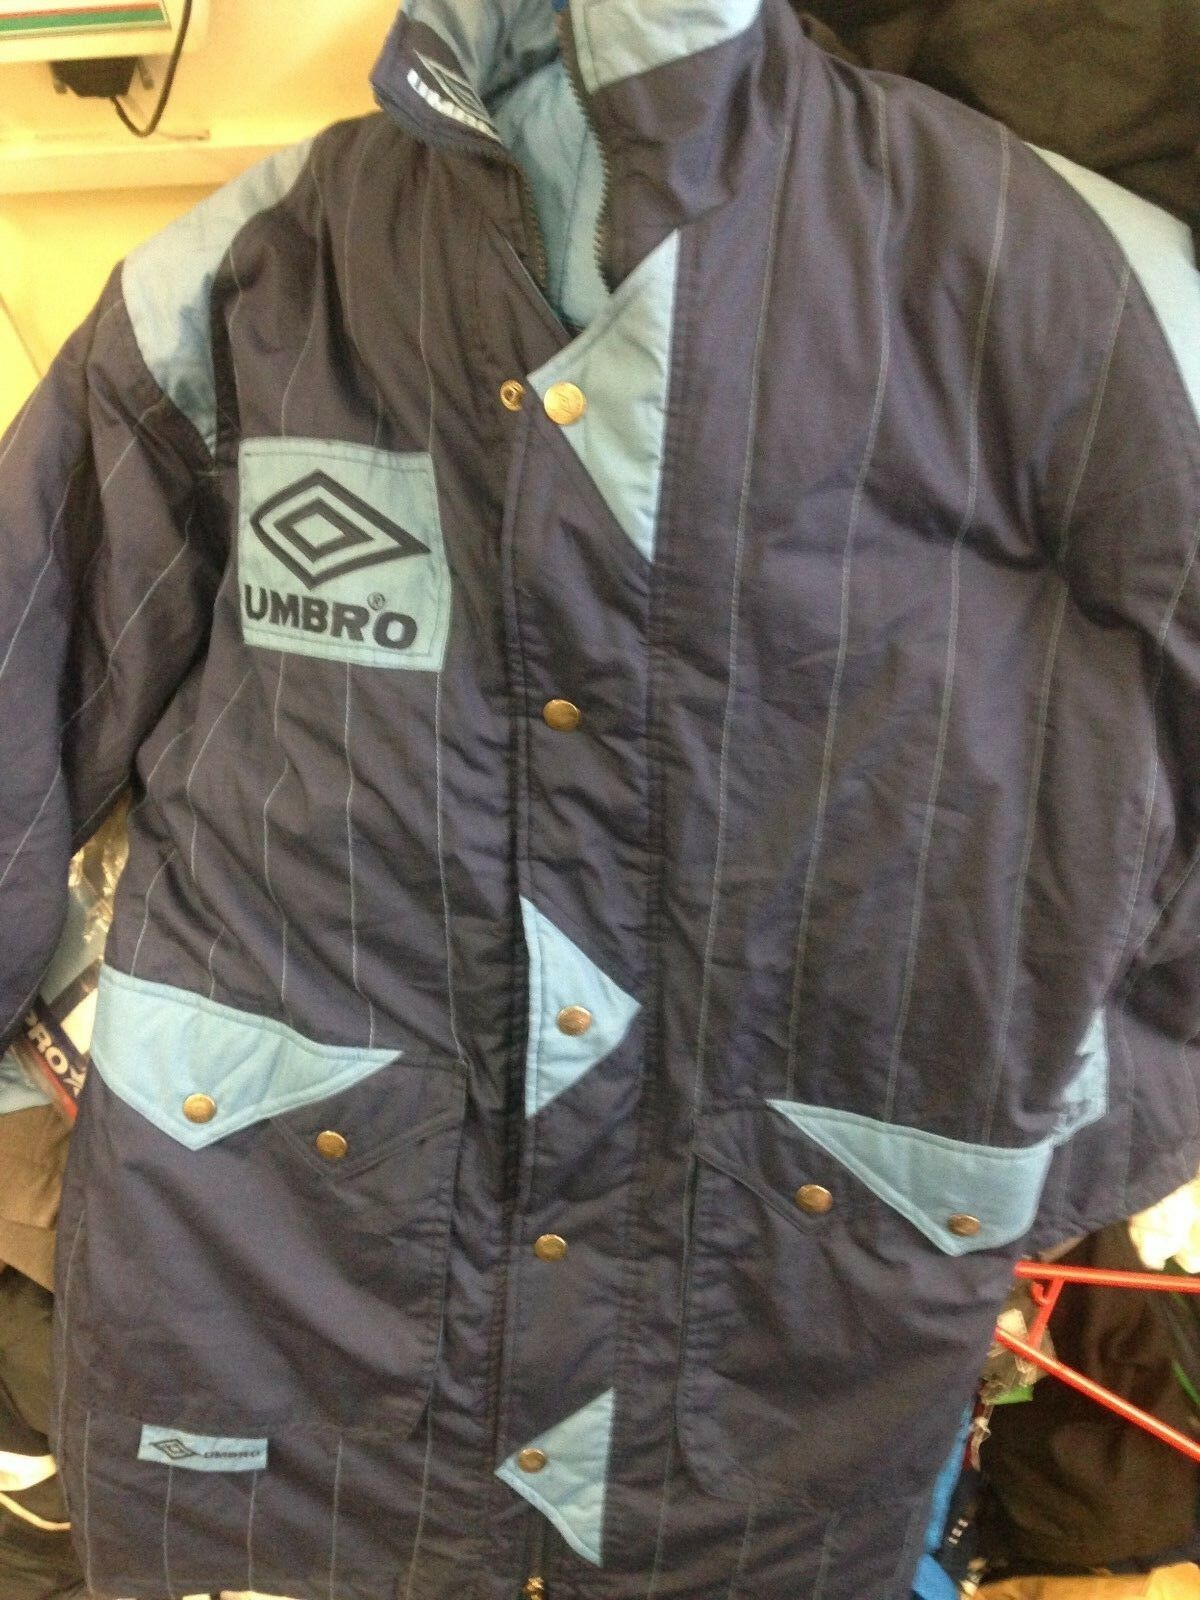 UMBRO VINTAGE COATS blueE SKY IN 34 36 INCH BRAND NEW AT